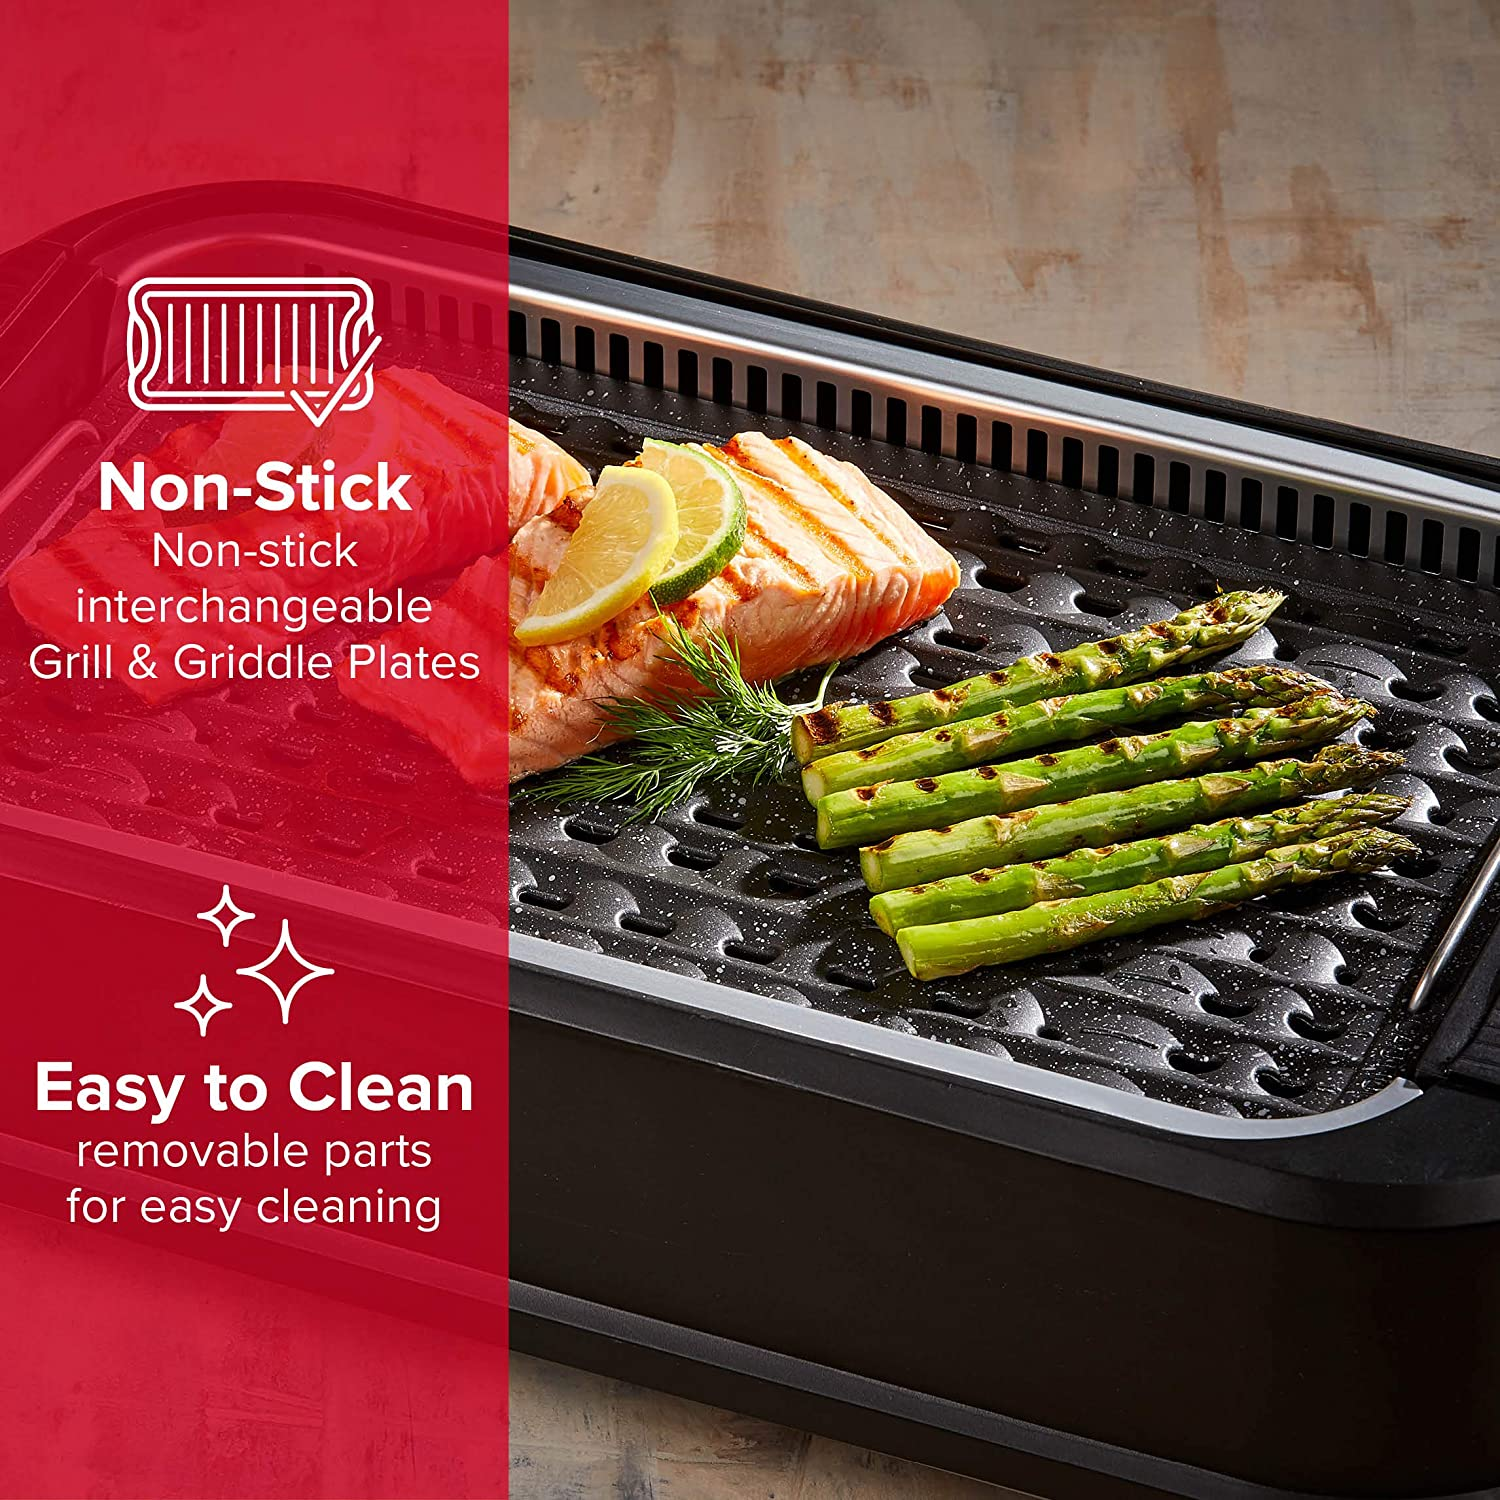 with Lid Power Smokeless Grill 1500W Indoor BBQ with Smoke Extractor Technology Adjustable Temperature Control Dishwasher Safe Non-Stick Aluminium Grill Plate